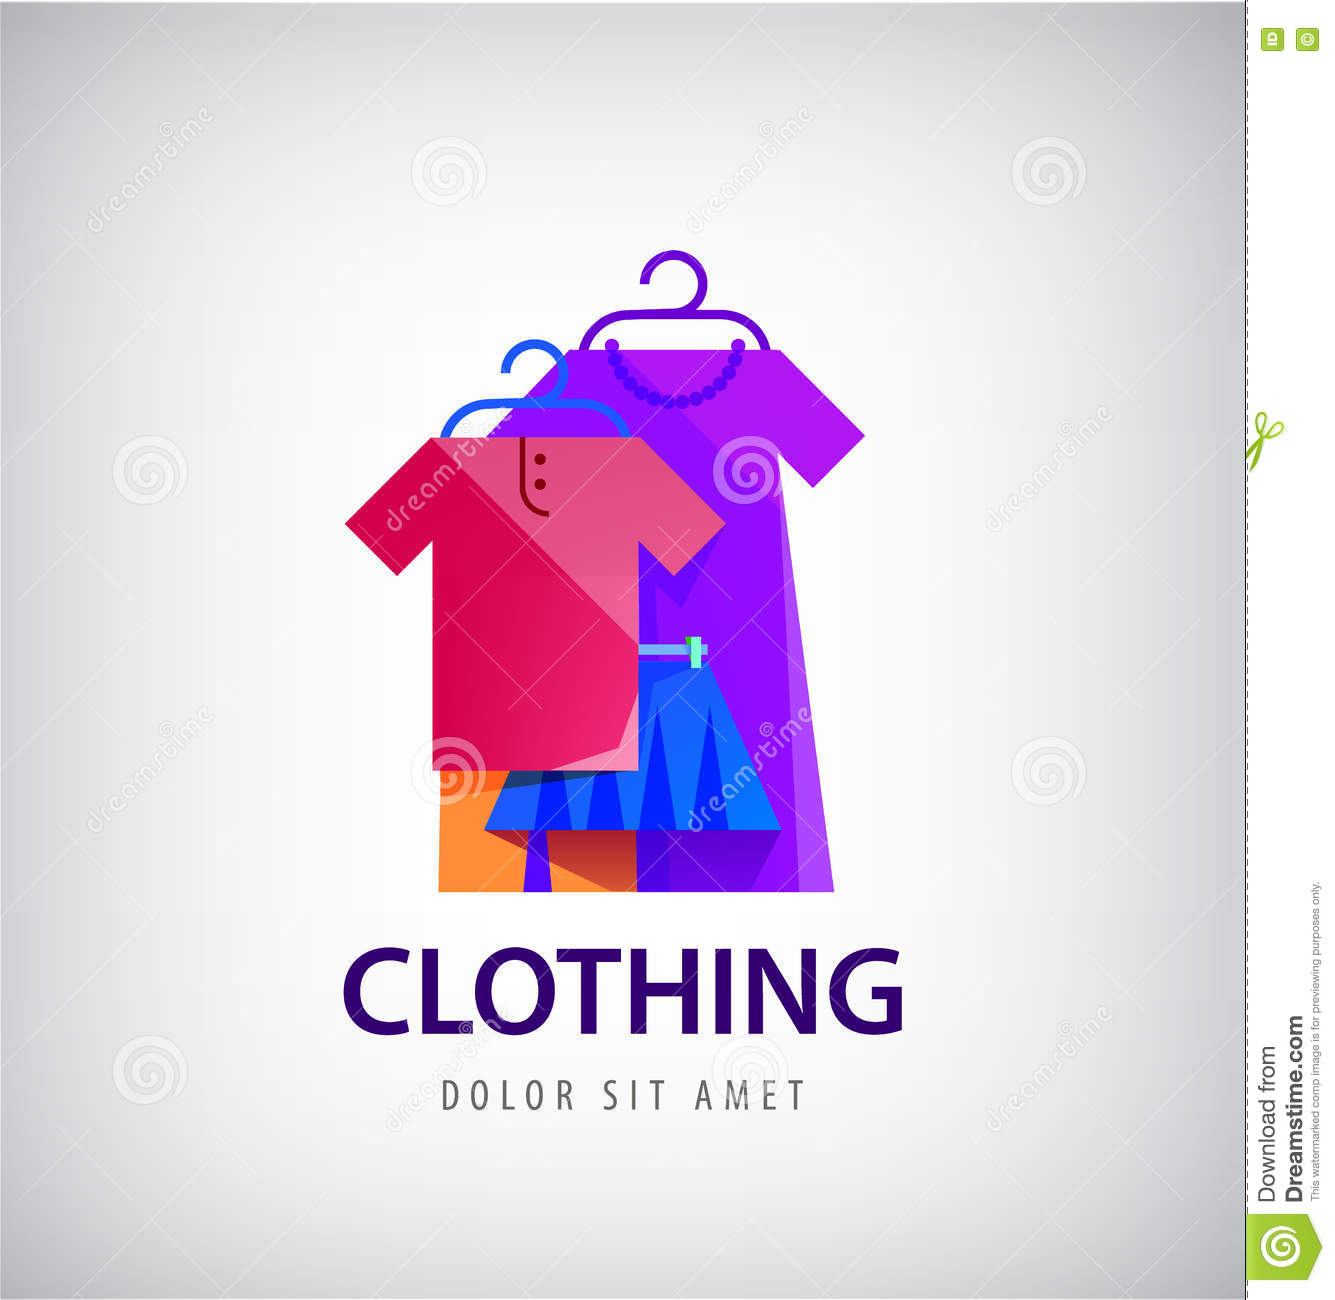 Find great deals on eBay for logo clothes. Shop with confidence.